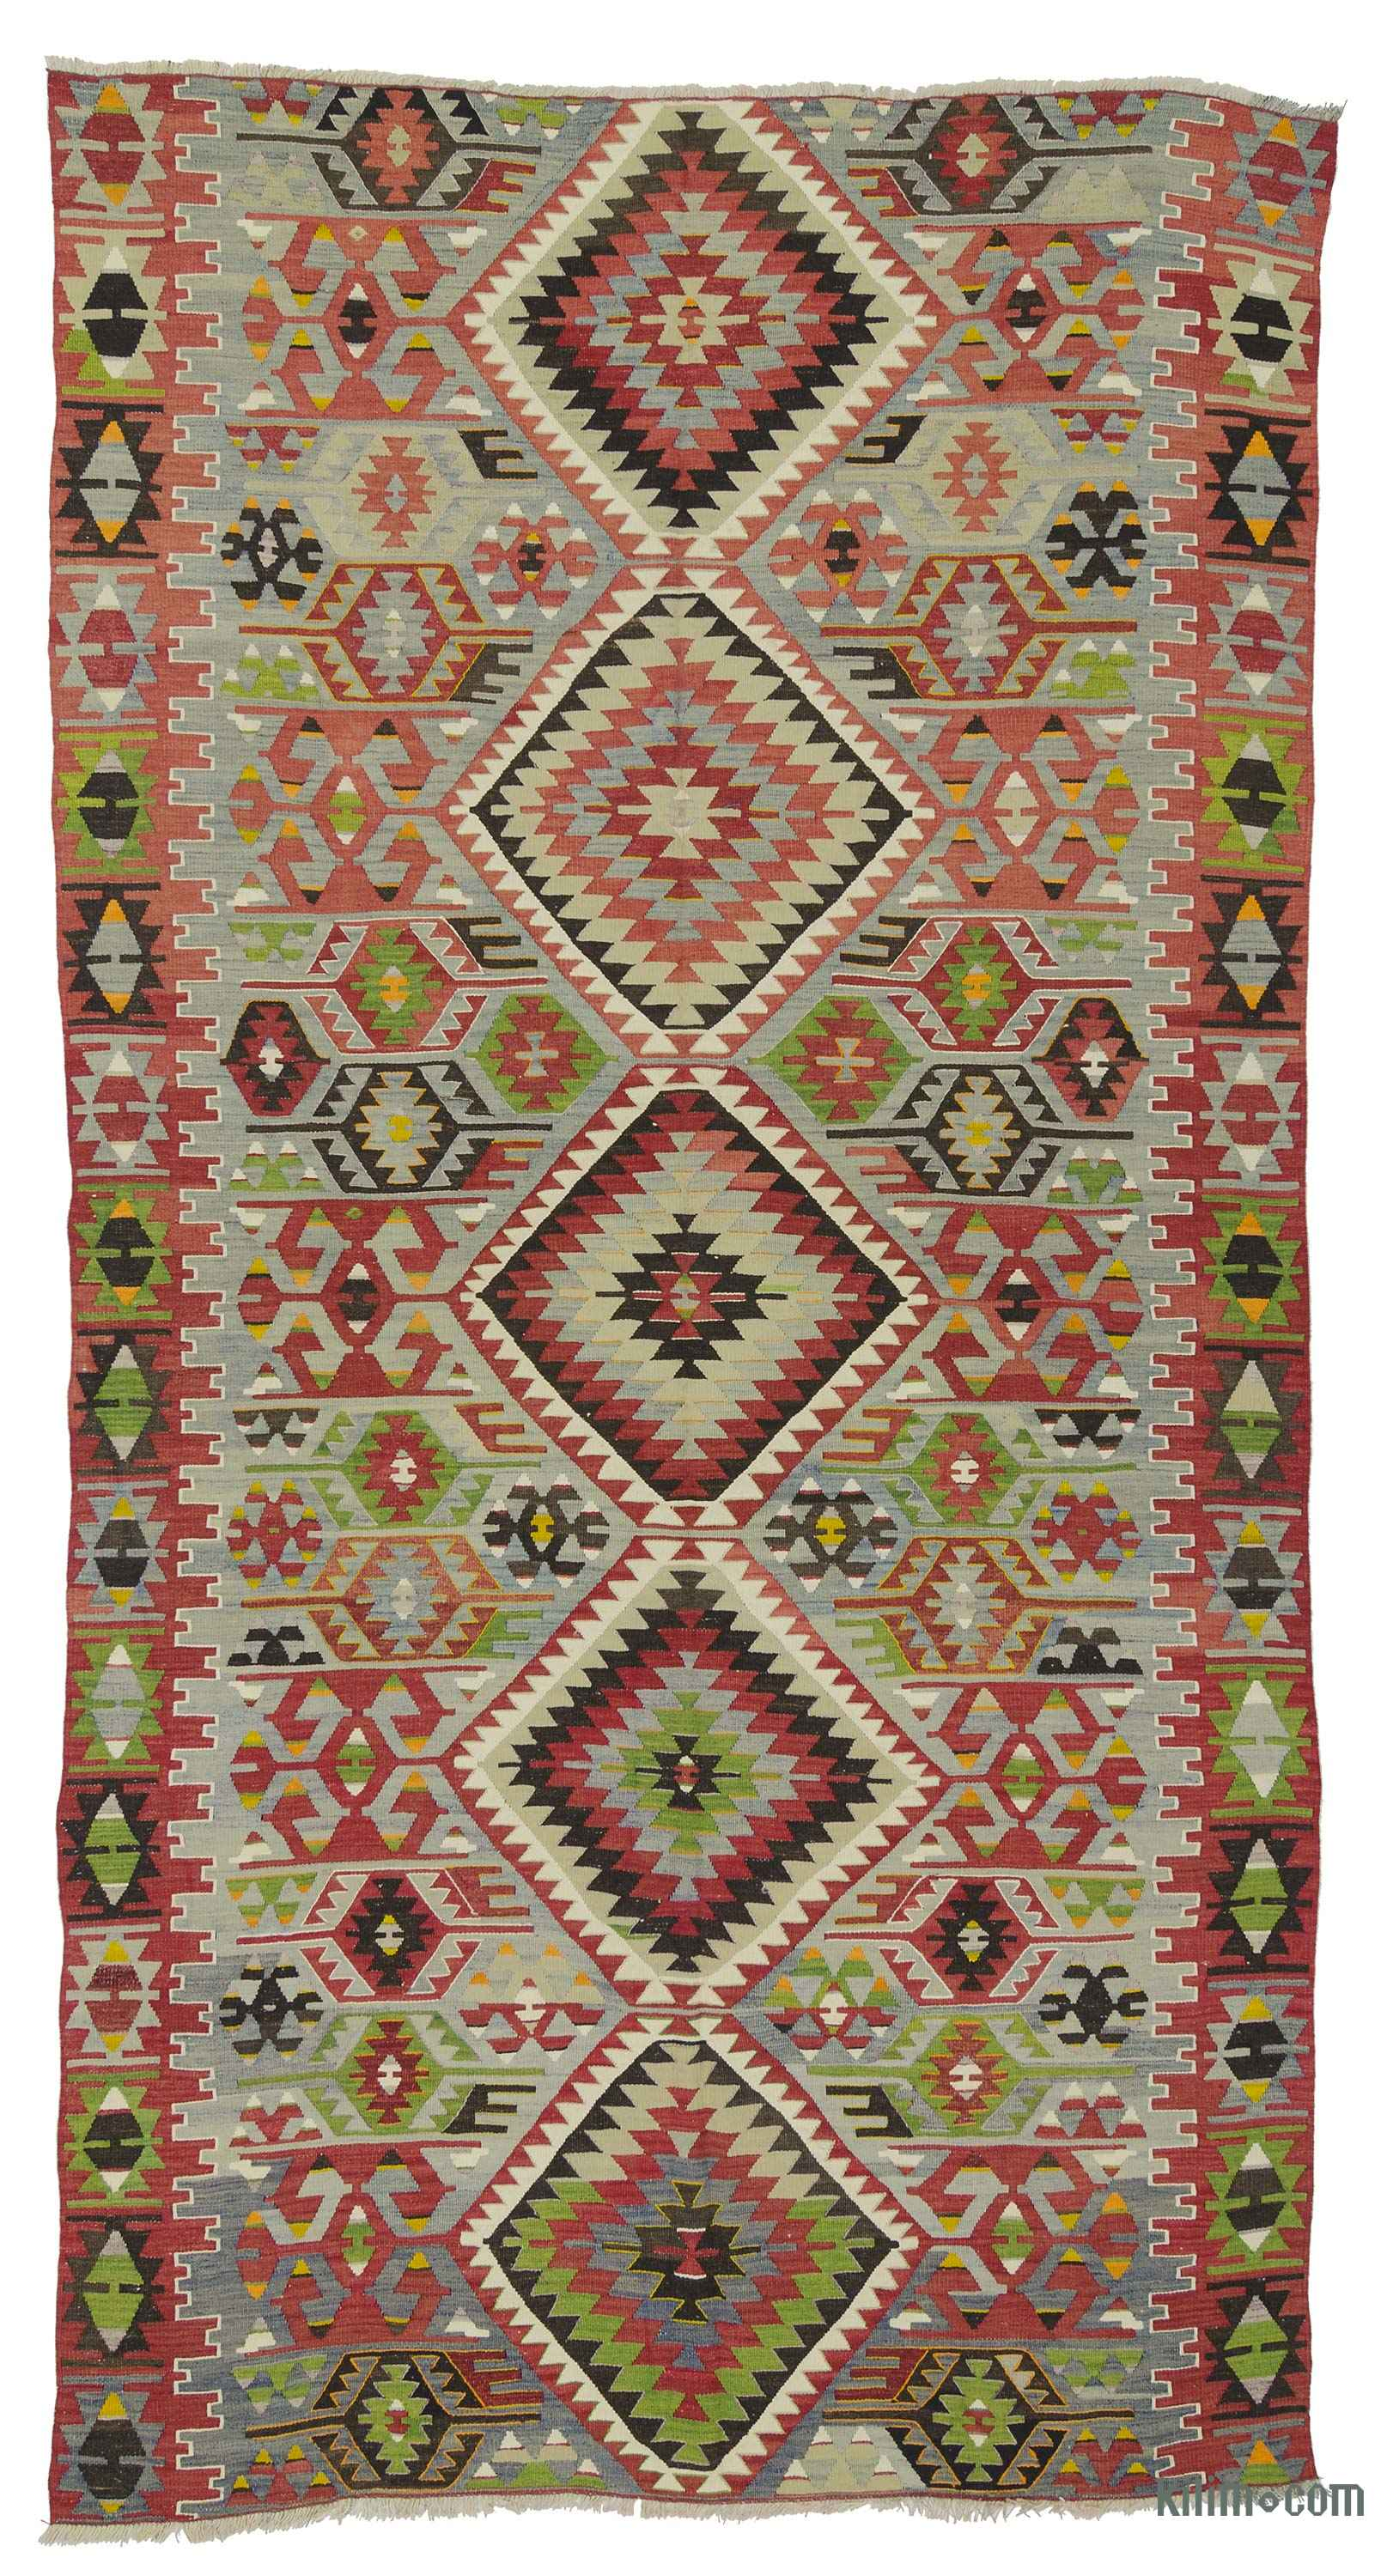 majesty shipping x wool brown beige product rug handmade light home overstock free safavieh garden today